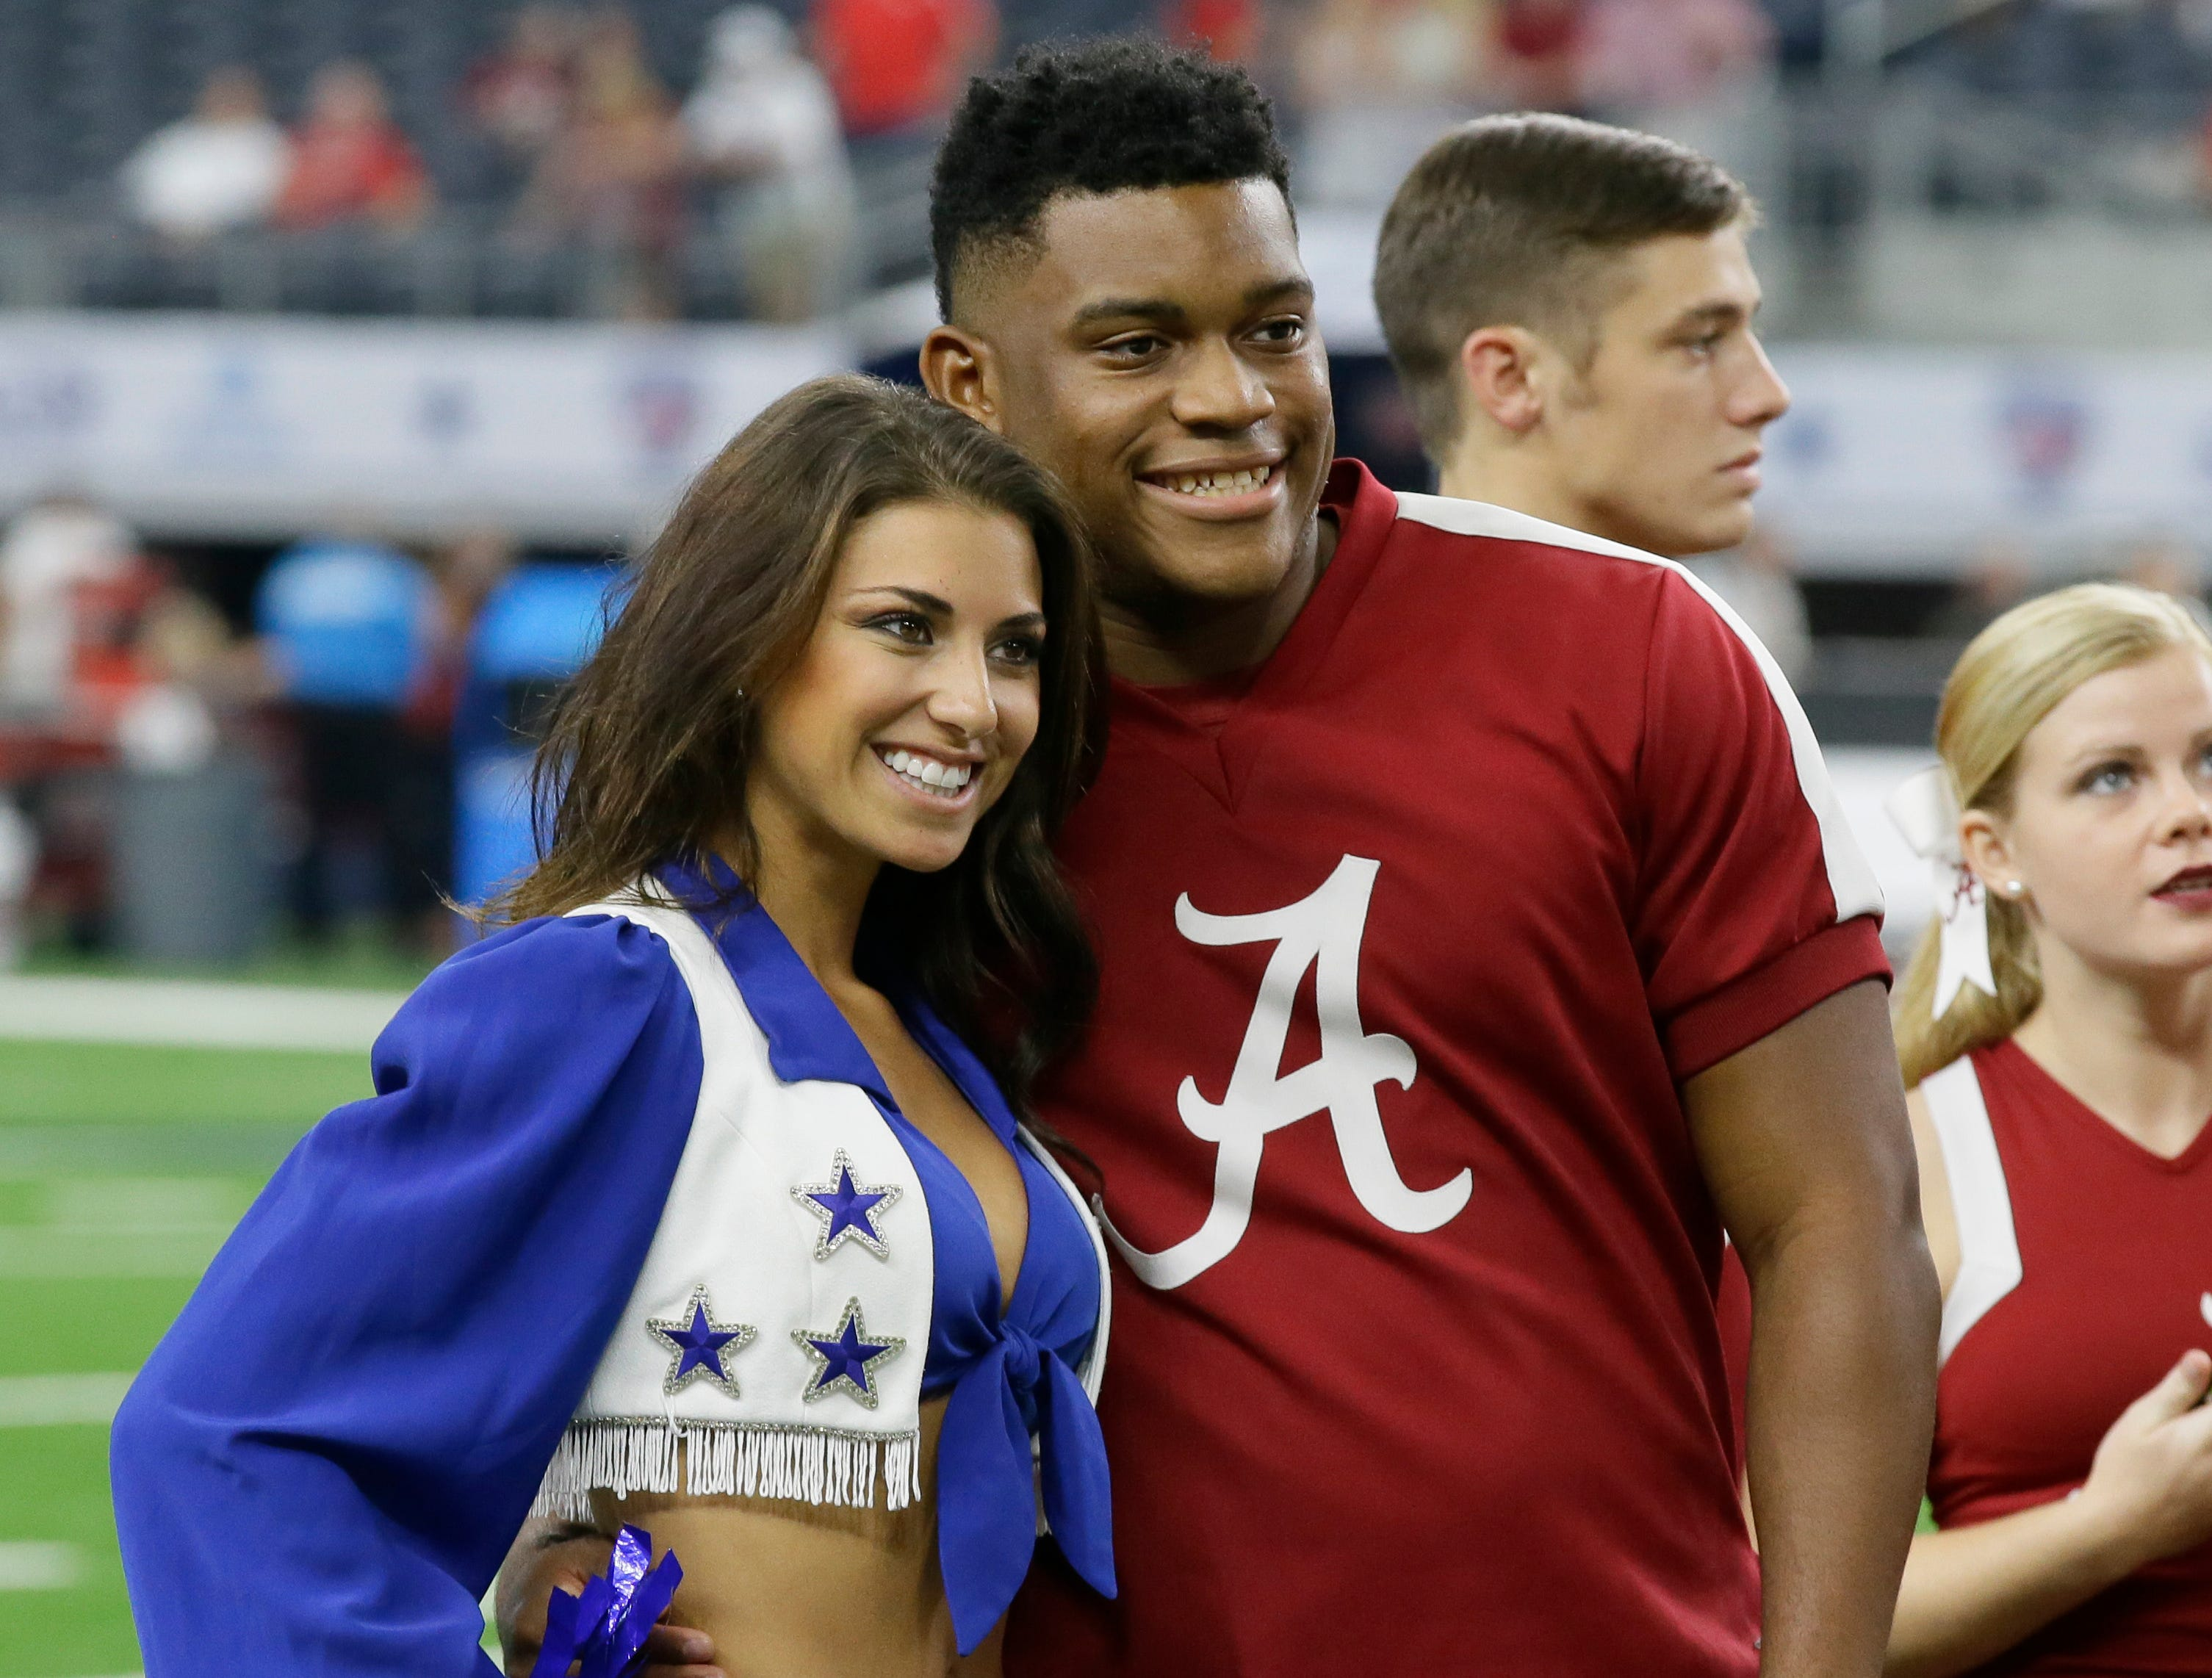 An Alabama cheerleader poses for a photo with Dallas Cowboys cheerleader before an NCAA college football game between Wisconsin and Alabama, Saturday, Sept. 5, 2015, in Arlington, Texas. (AP Photo/LM Otero)